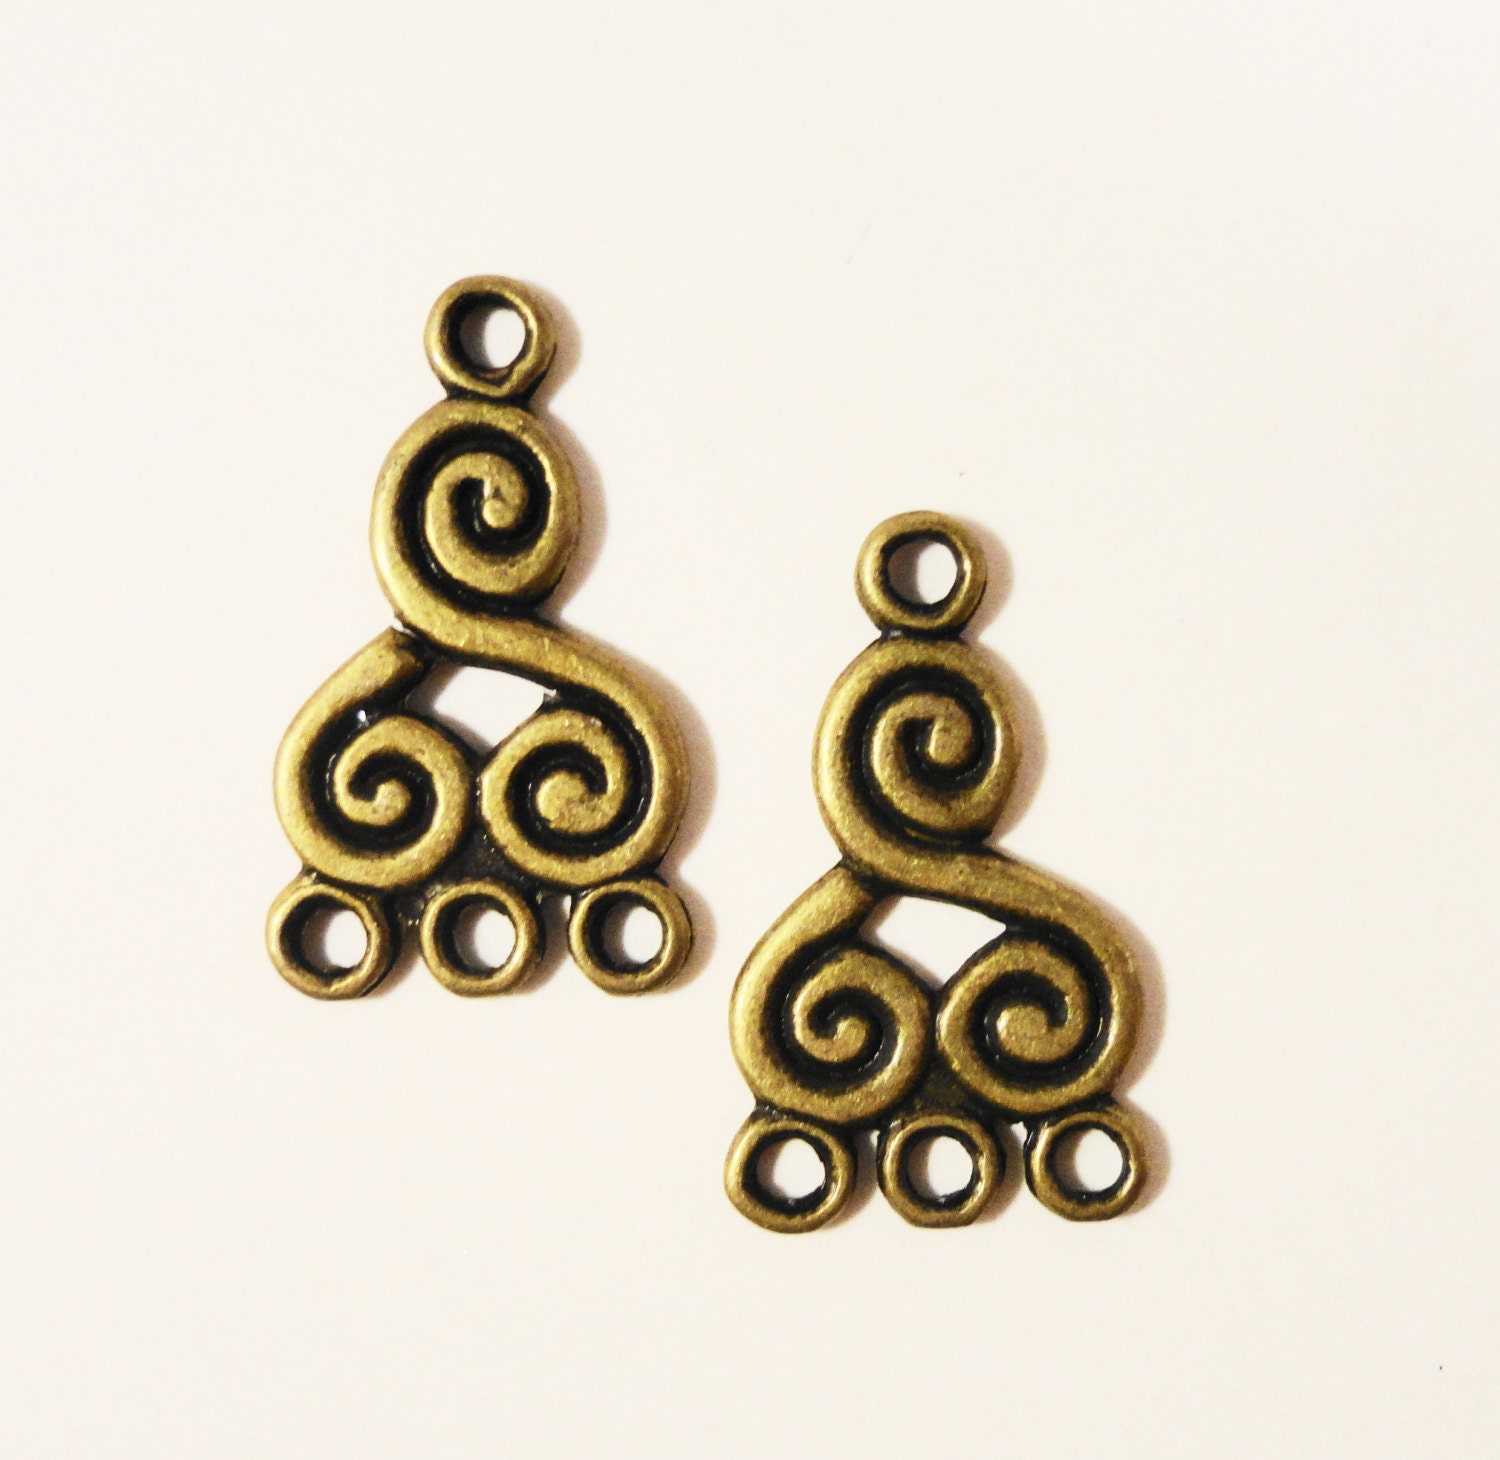 Bronze chandelier earring findings 21x13mm antique brass metal swirl bronze chandelier earring findings 21x13mm antique brass metal swirl spiral 3 to 1 earring connector jewelry making jewelry findings 6pcs aloadofball Choice Image